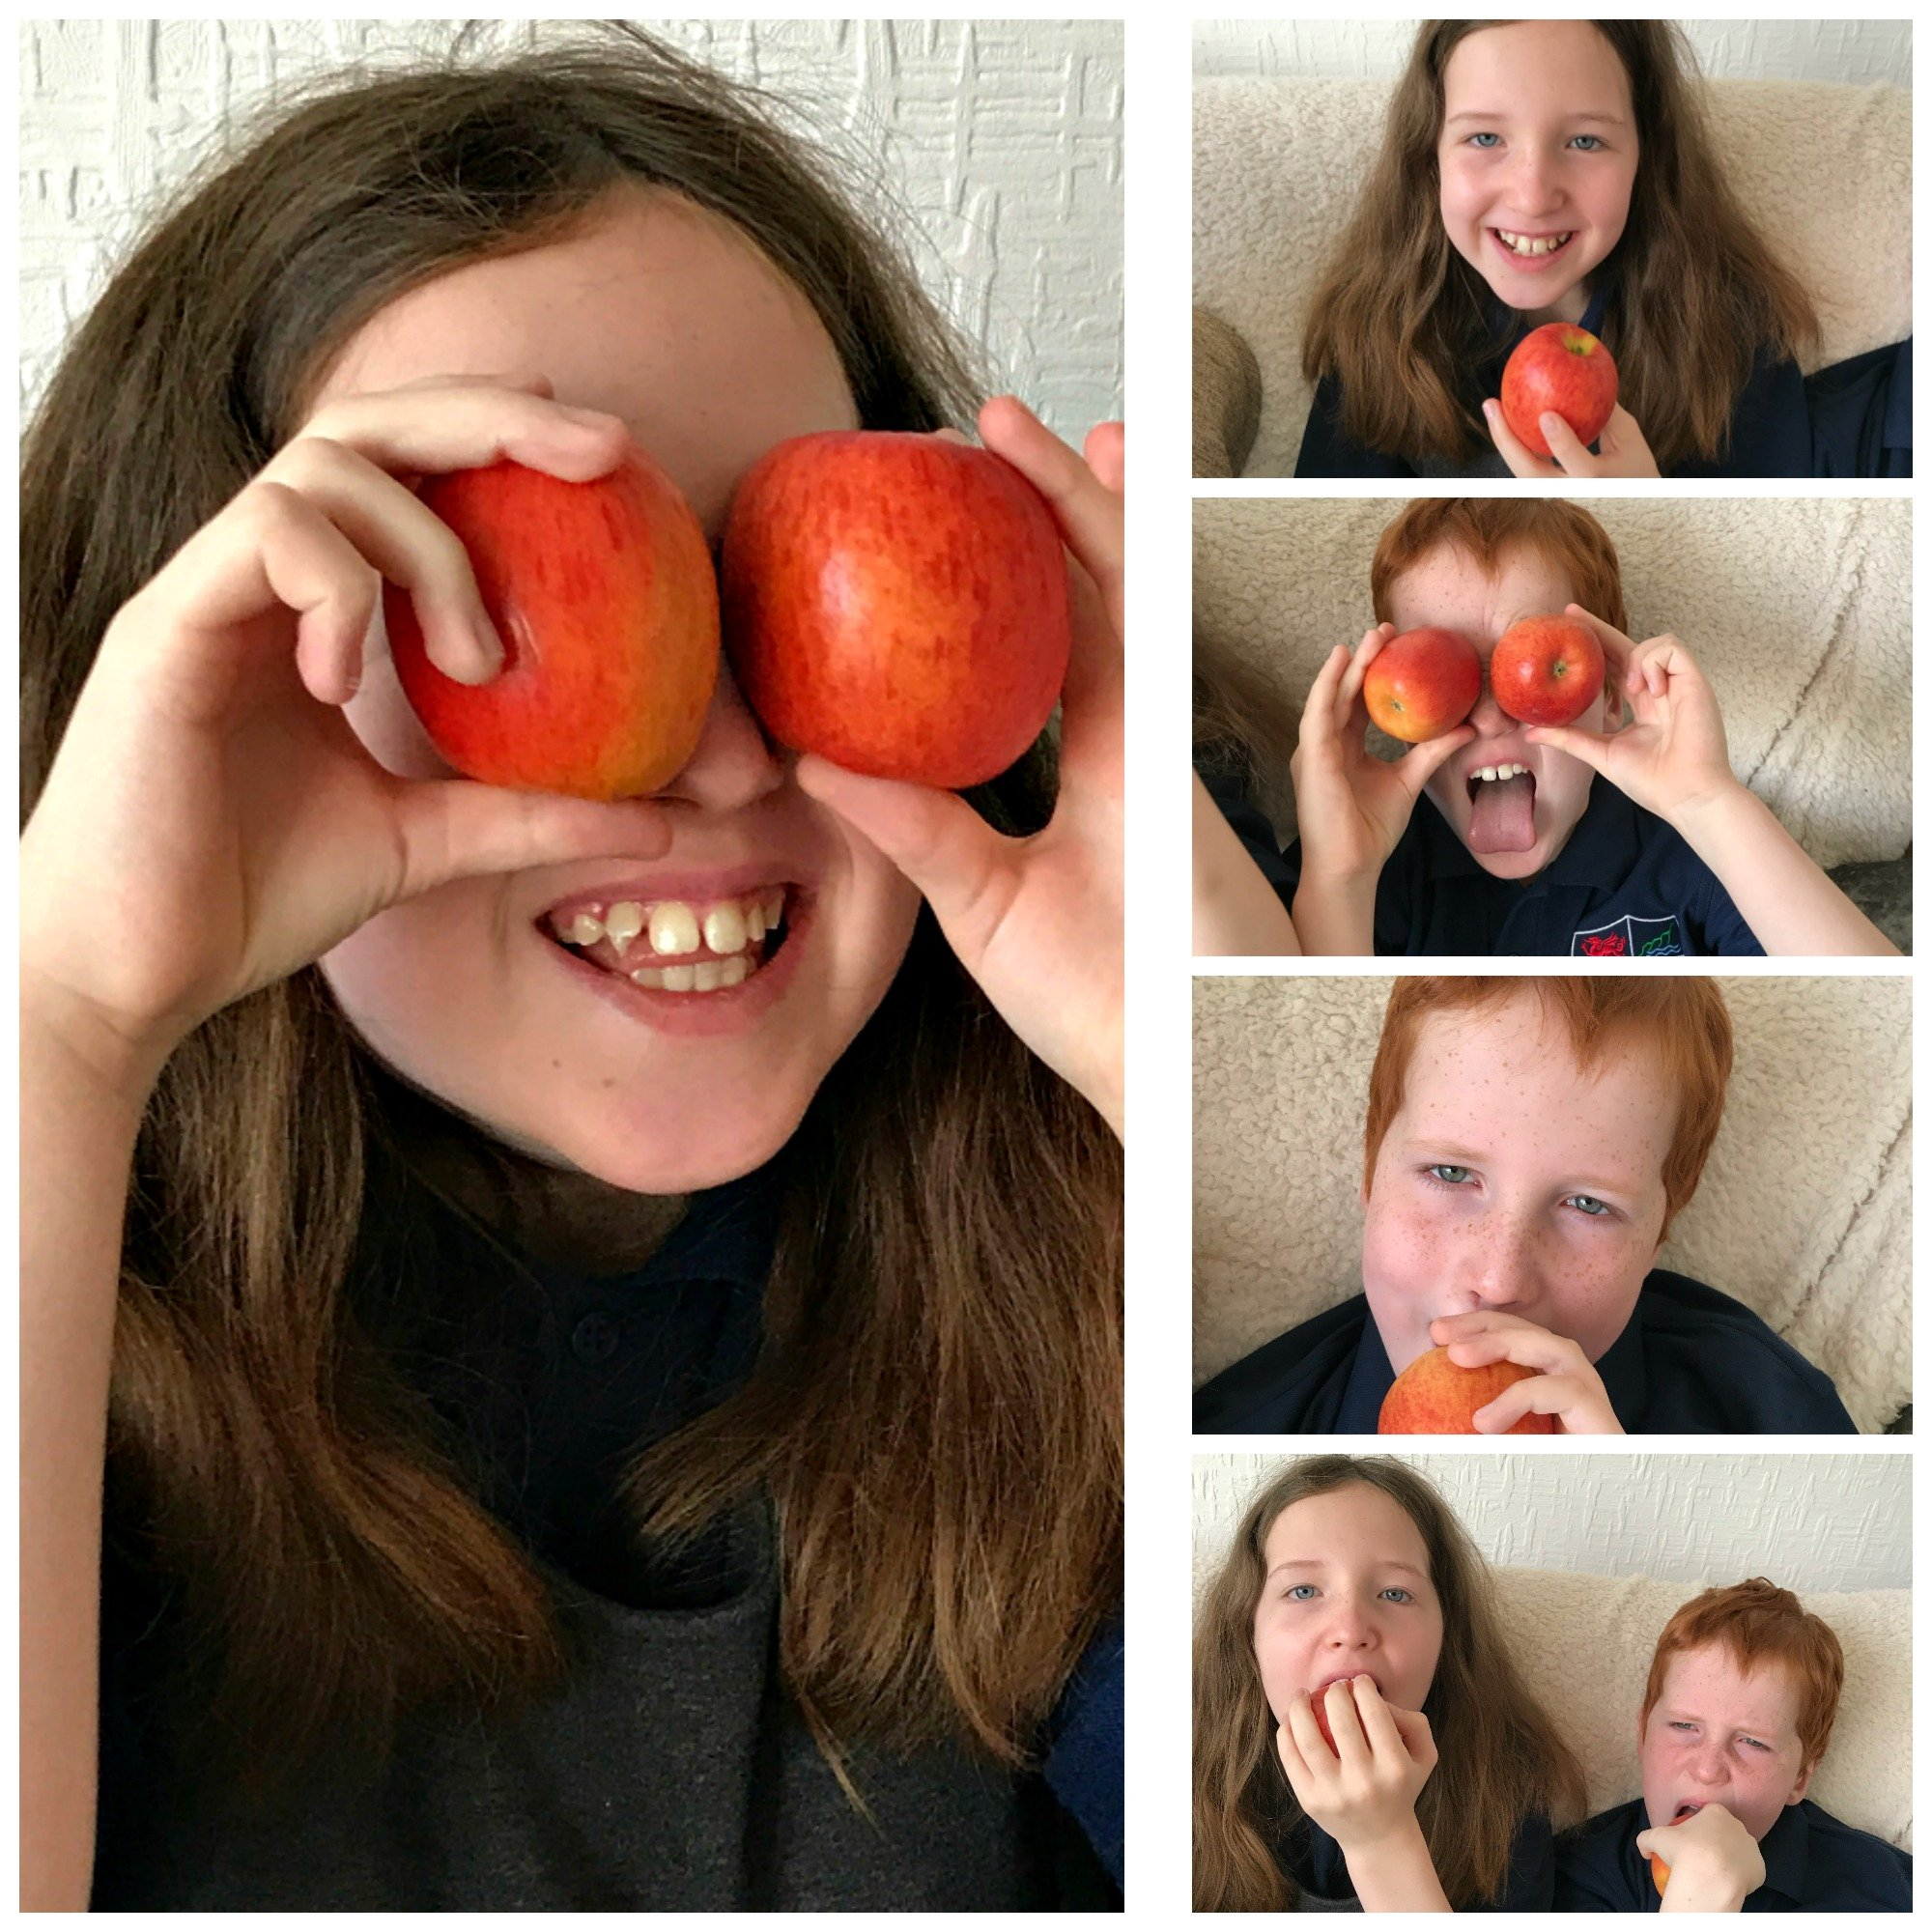 Caitlin & Ieuan playing with Jazz apples